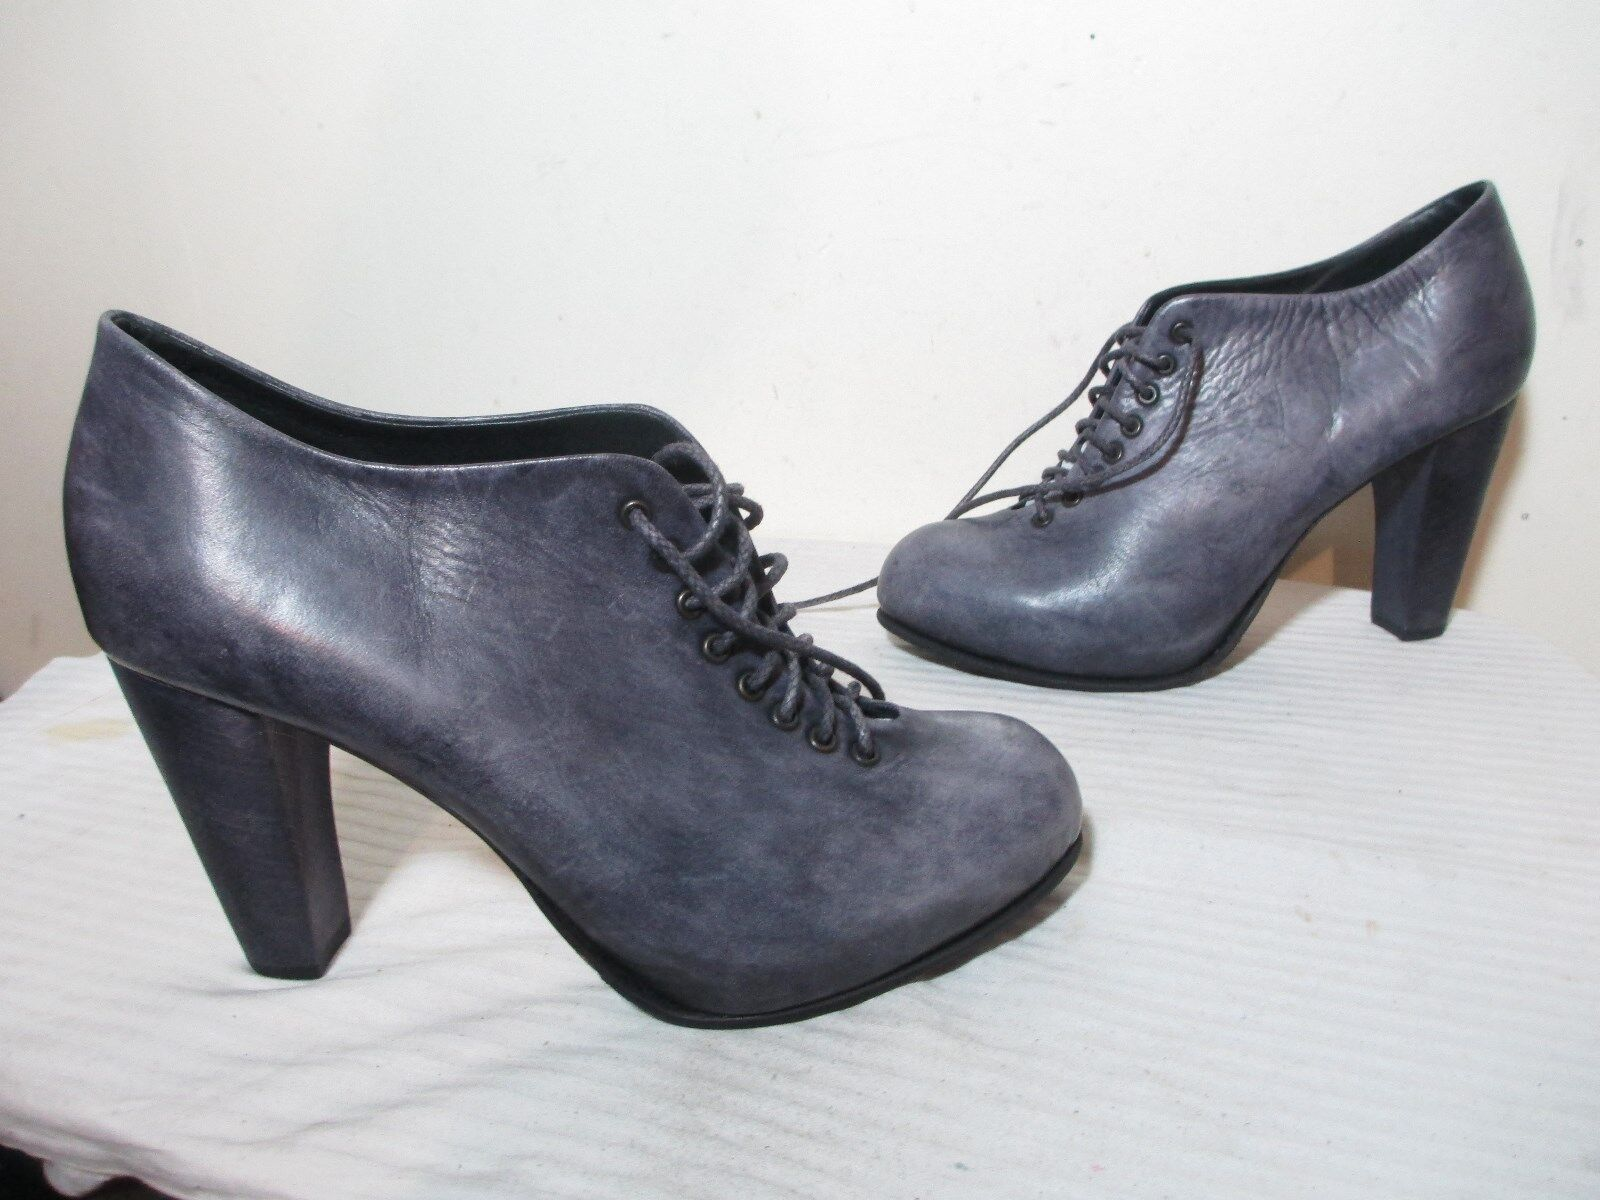 340 REINHARD PLANK WO'S WASHED PURPLE LEATHER PLATFORM LACE UP PUMPS  40 US 9.5